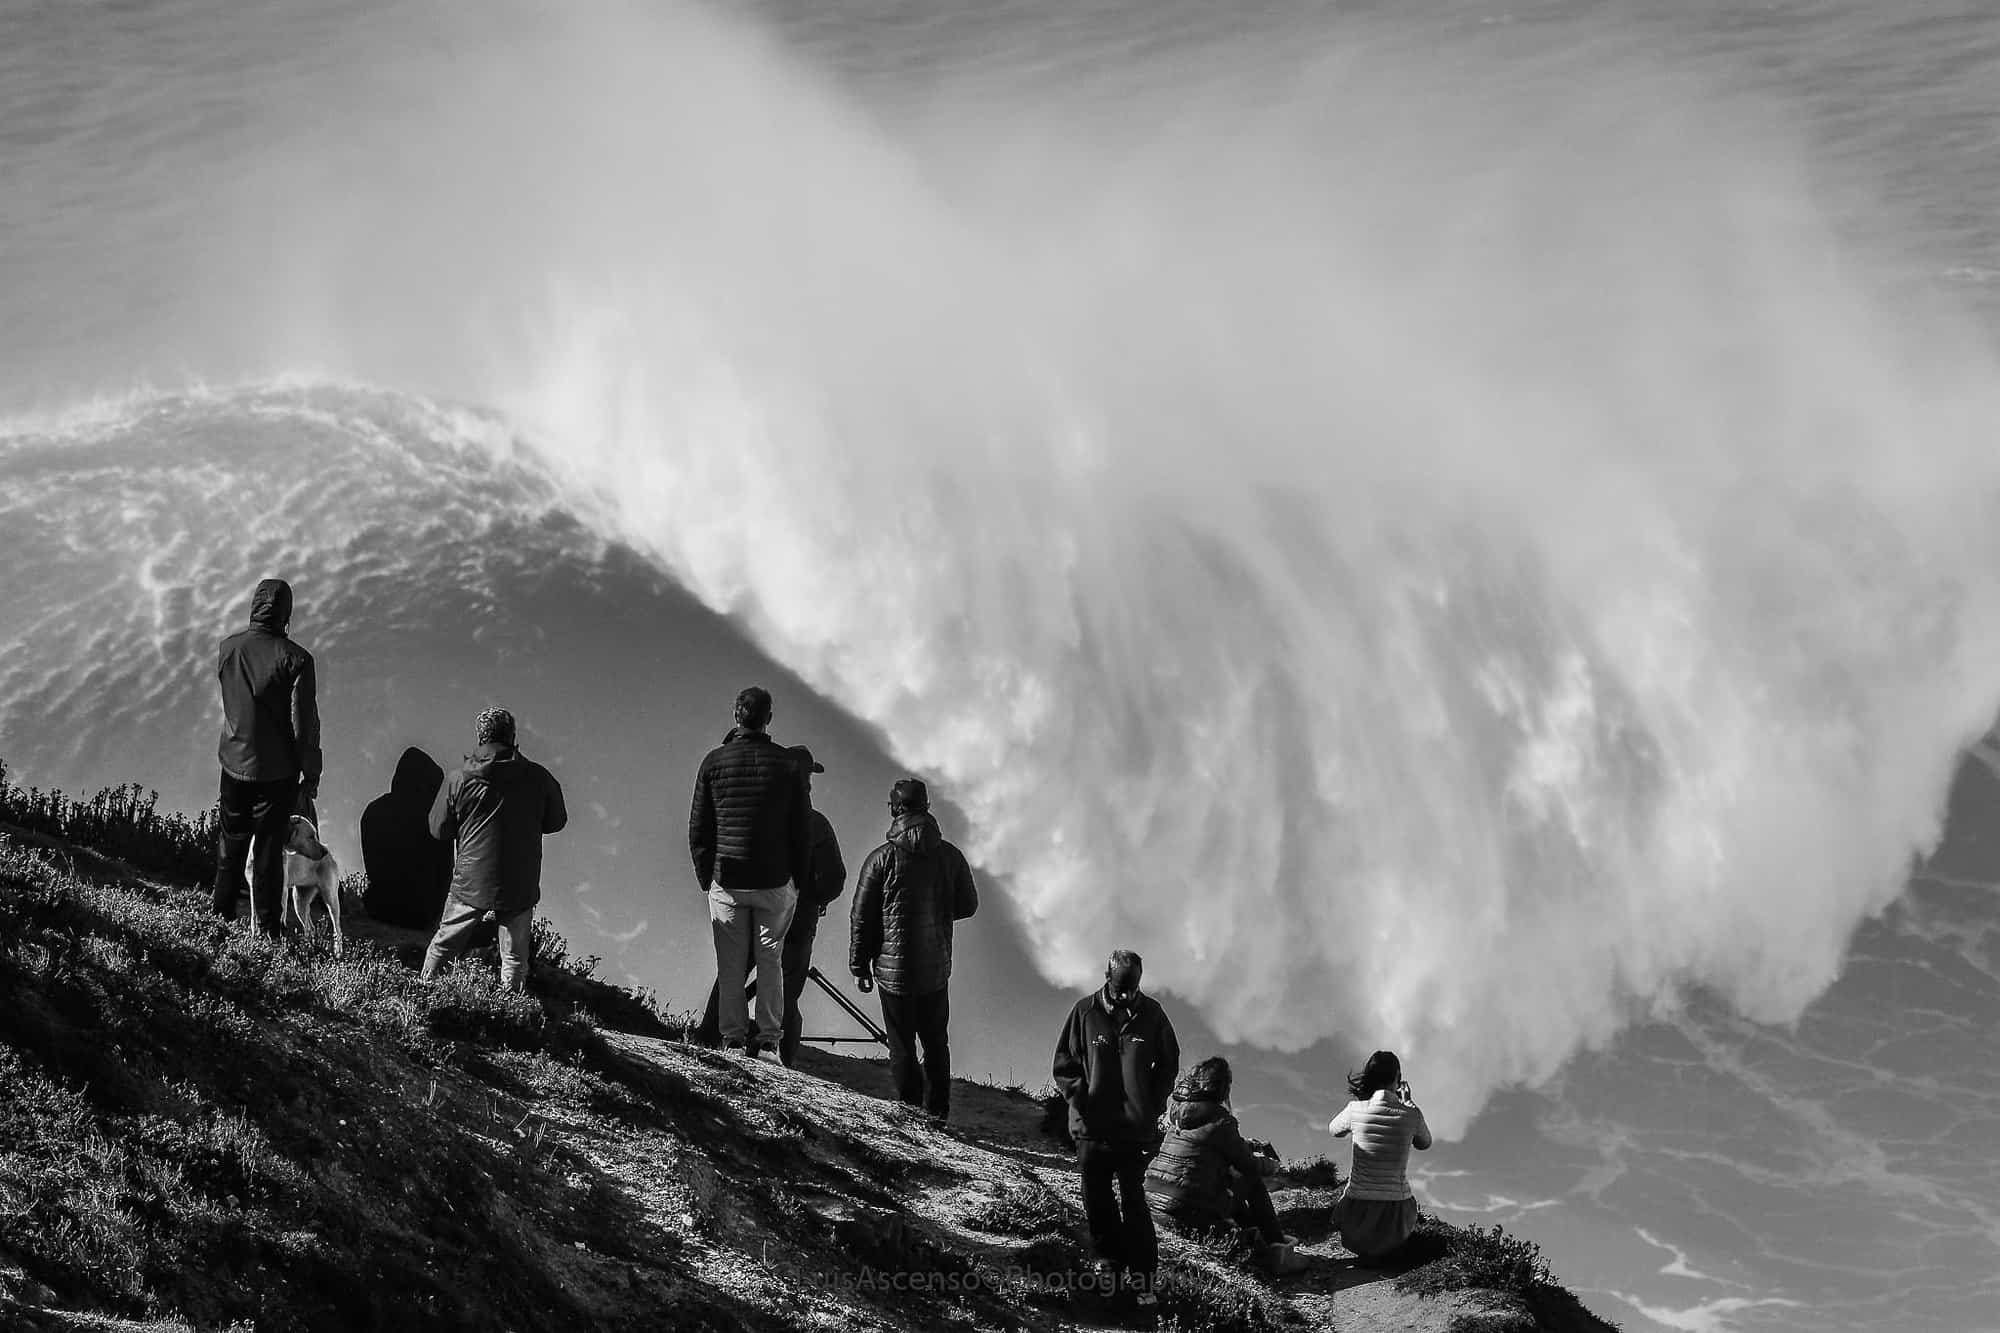 Portugal - Praia do Norte Beach - High waves unusual things to do in Portugal - Luis Ascenso